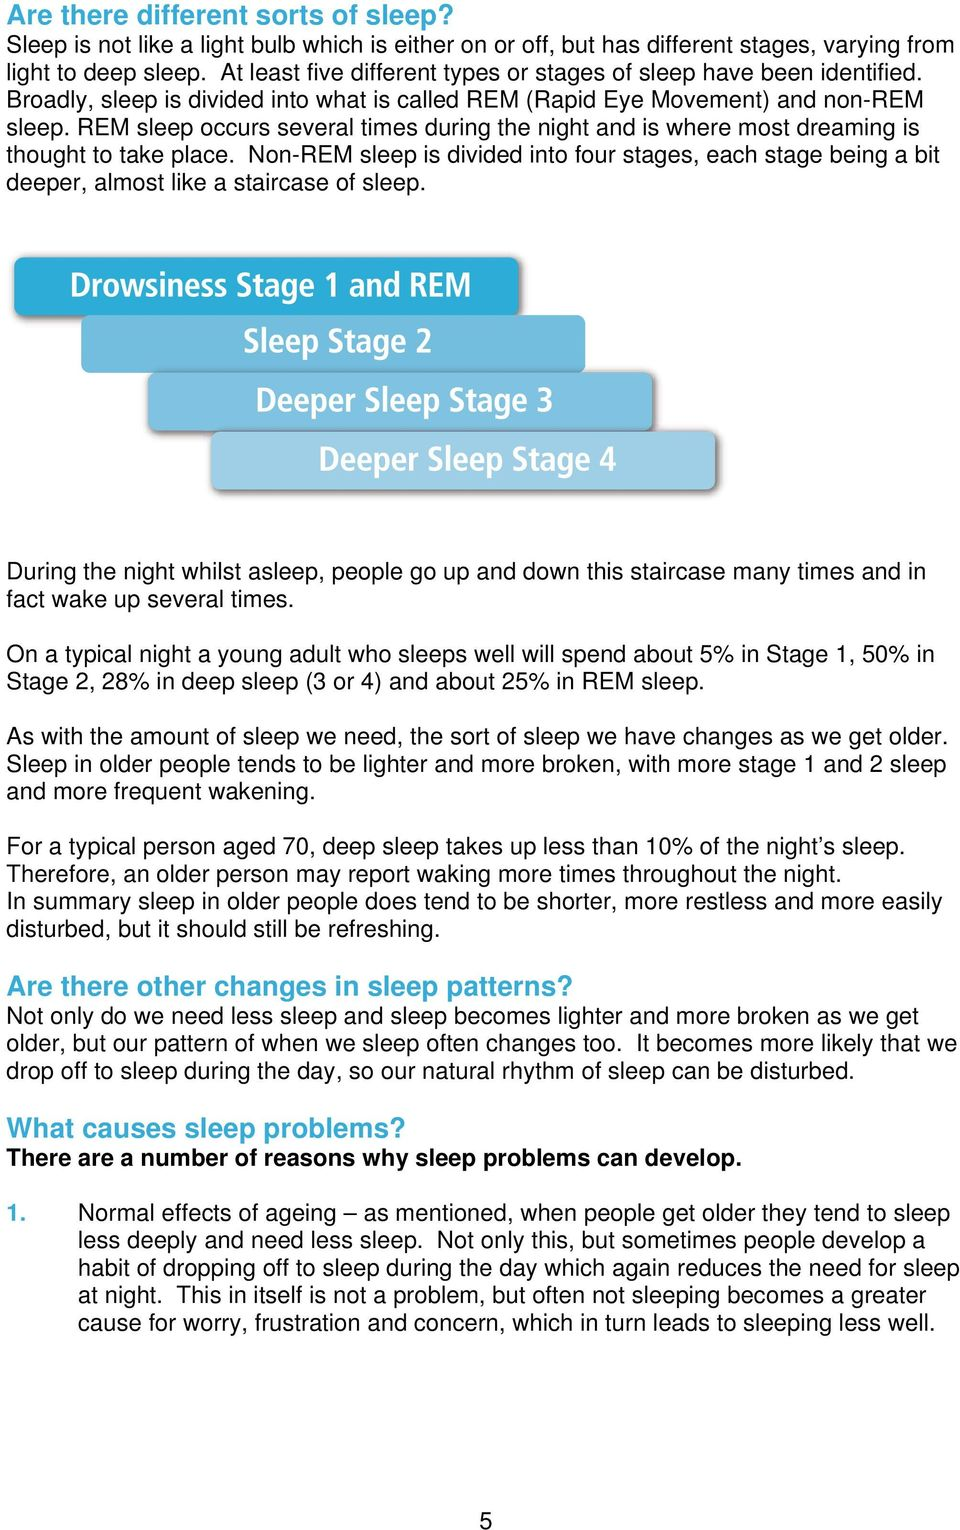 REM sleep occurs several times during the night and is where most dreaming is thought to take place.